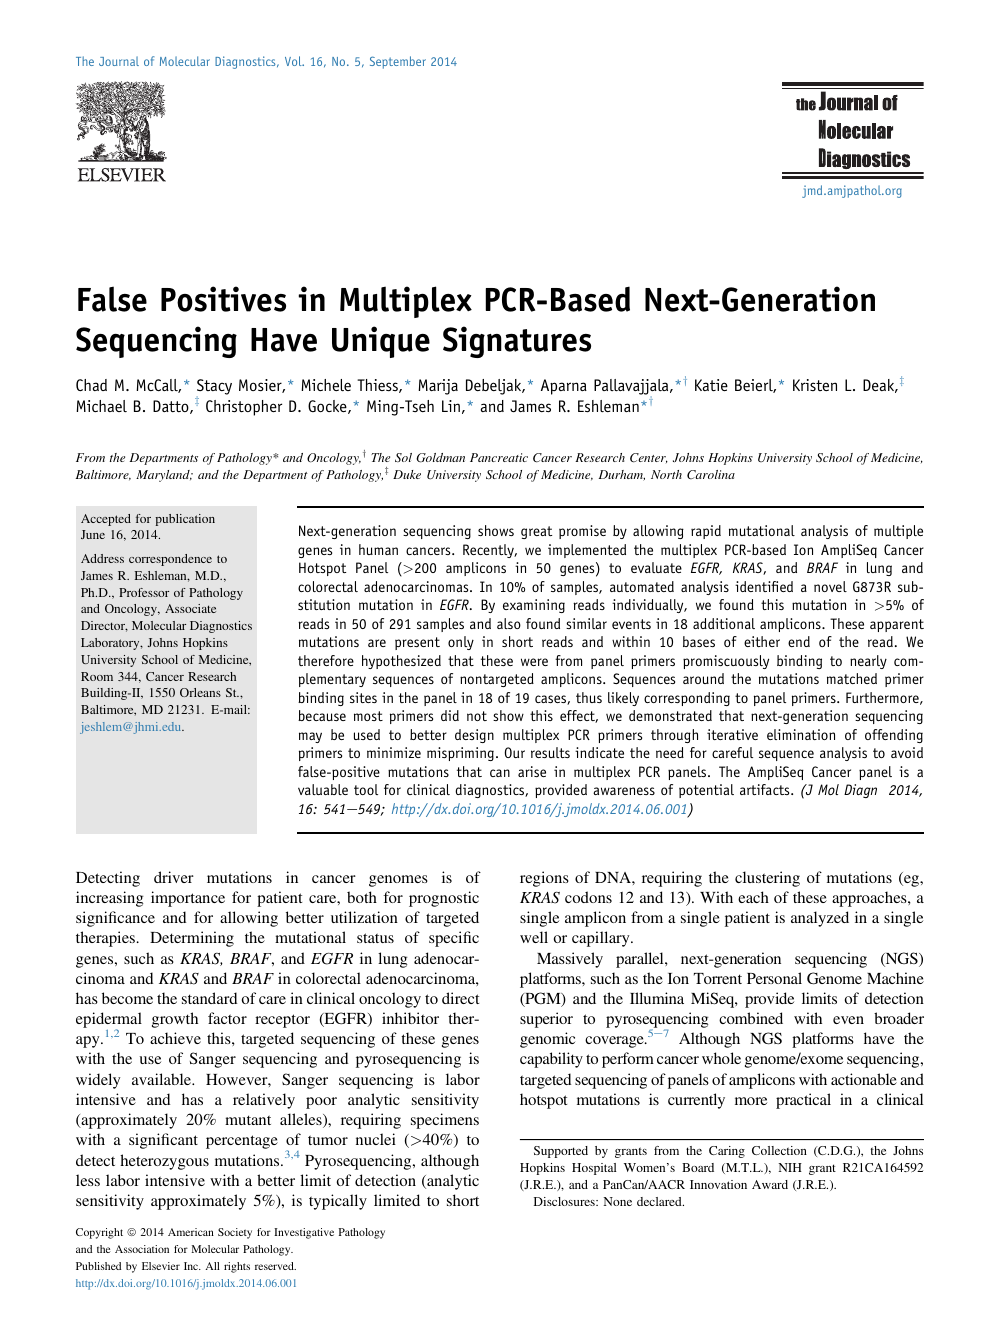 False Positives in Multiplex PCR-Based Next-Generation Sequencing